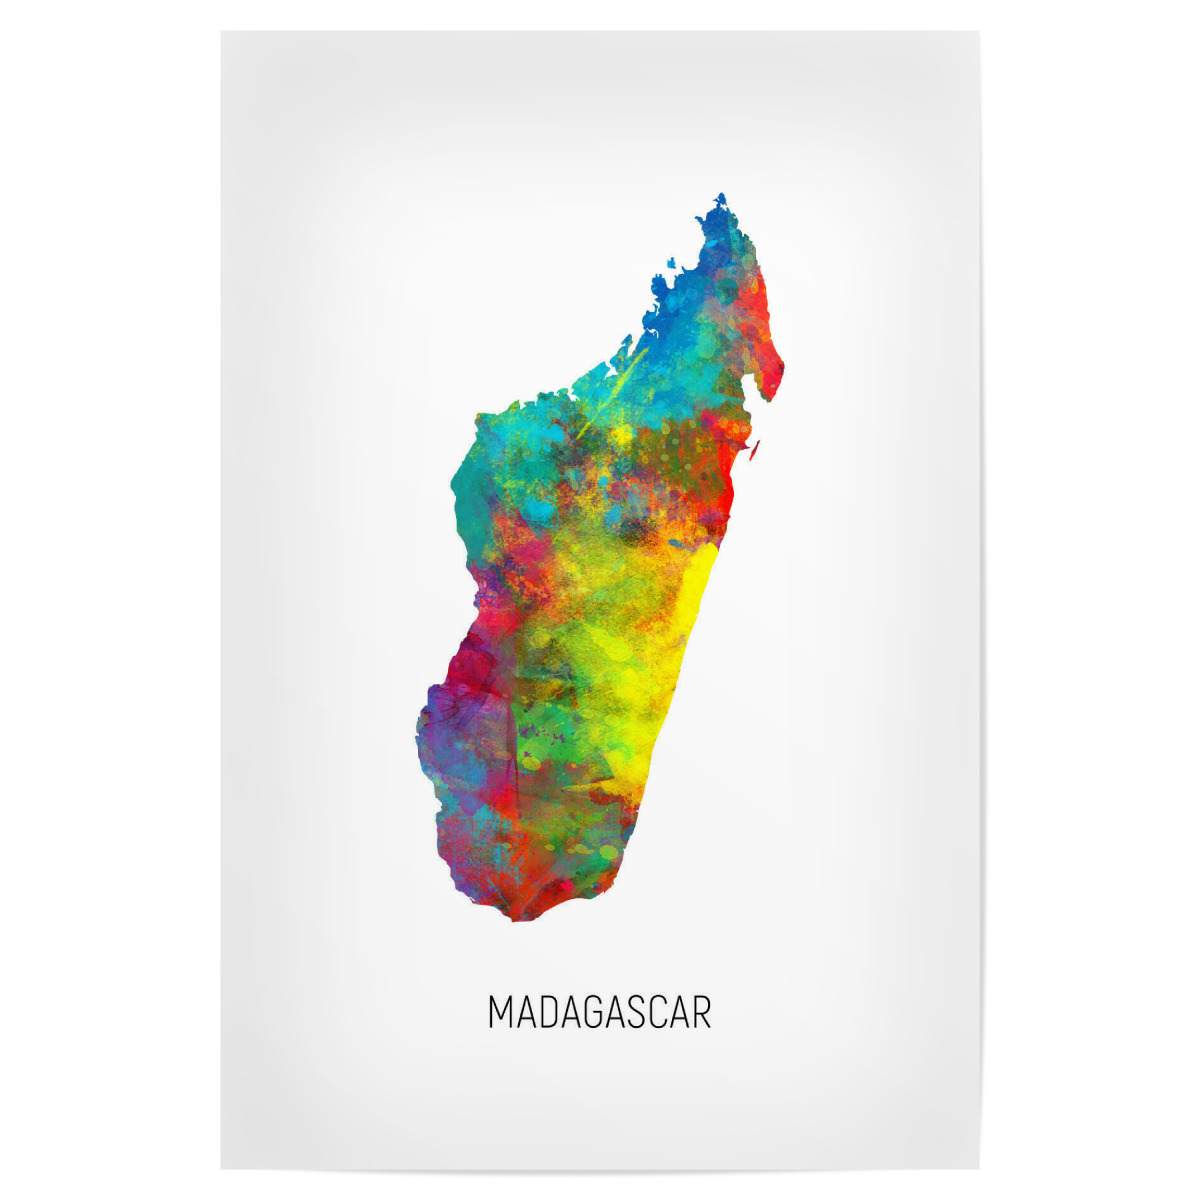 Madagascar Watercolor Map als Poster bei artboxONE kaufen